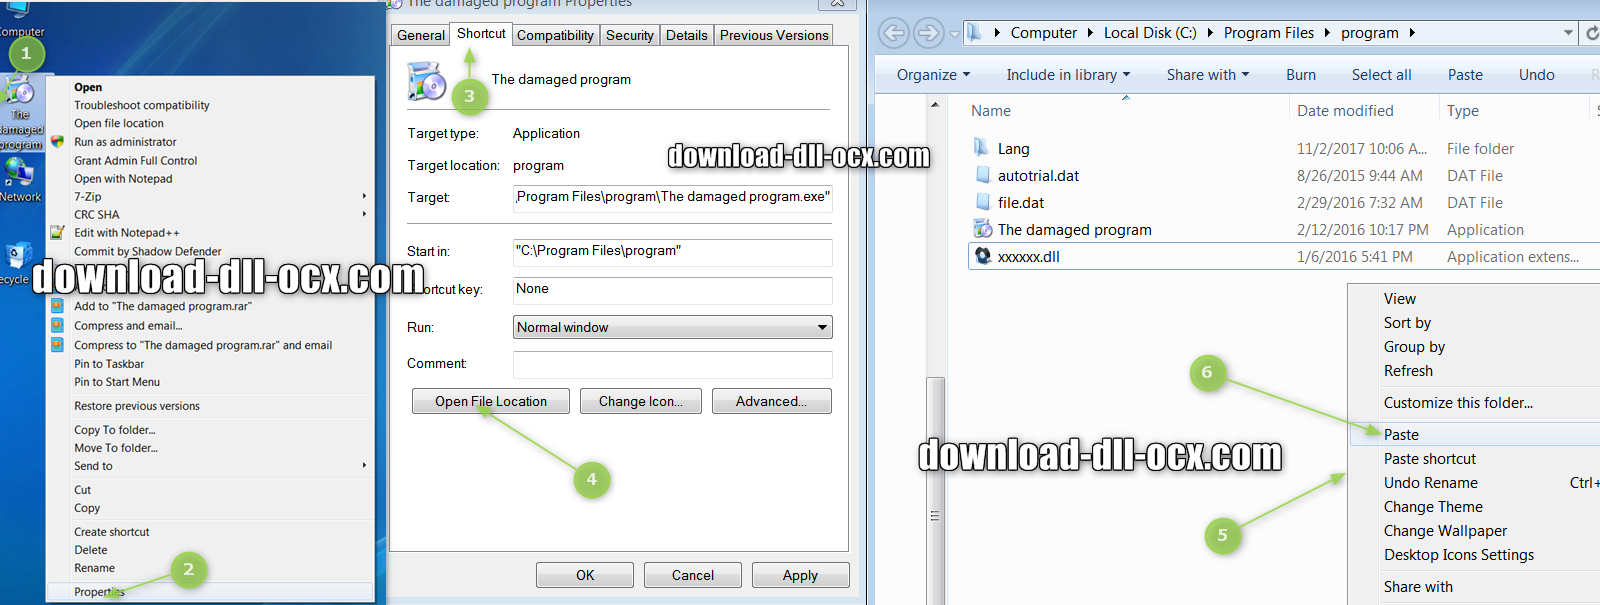 how to install IScript7.dll file? for fix missing